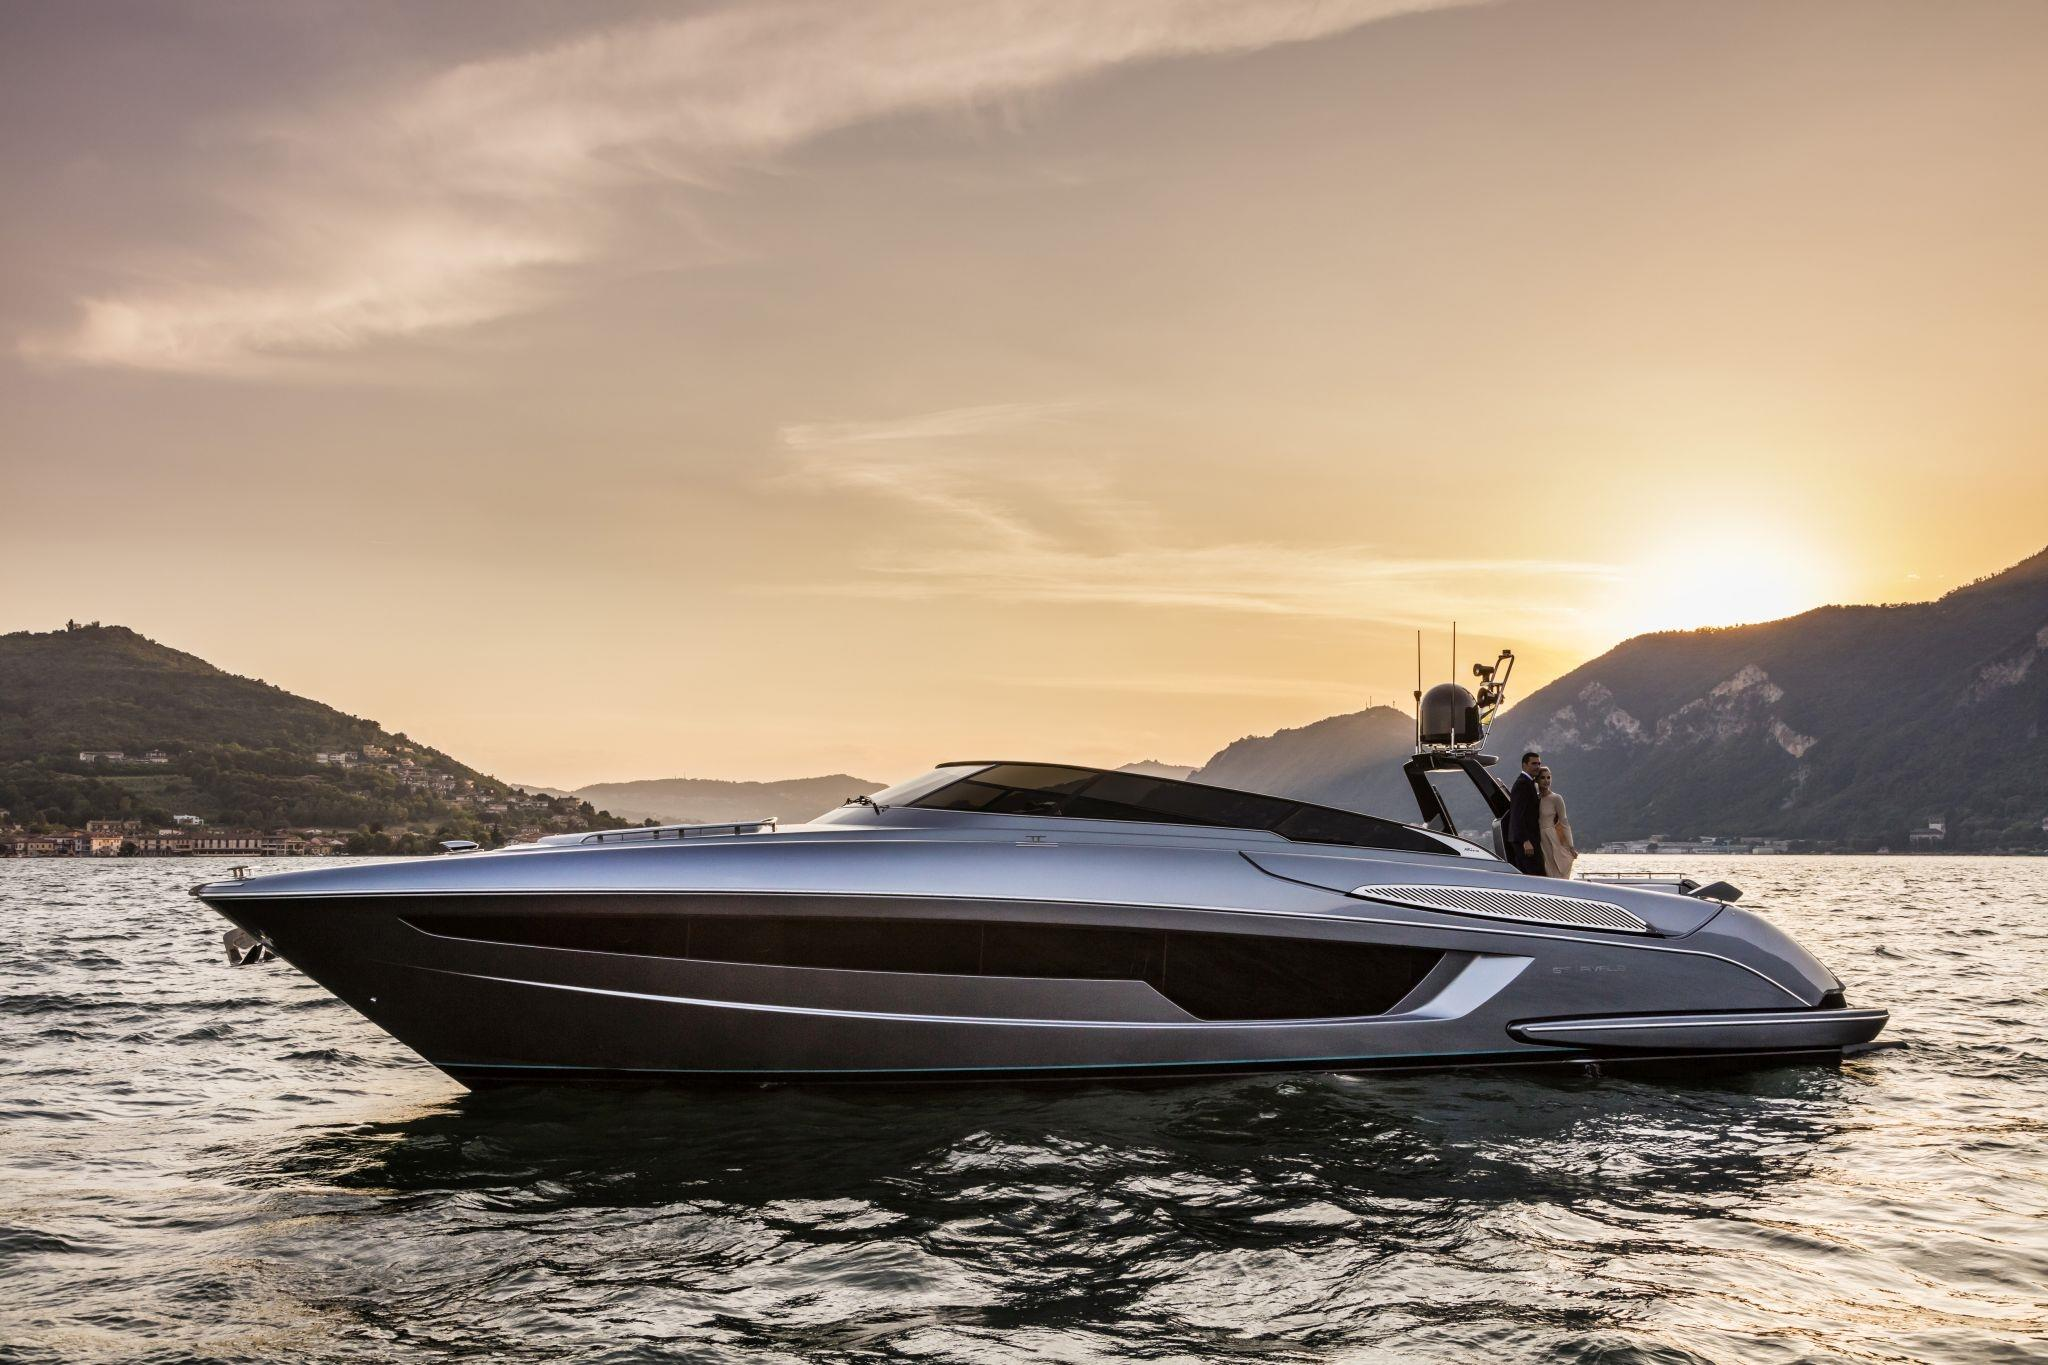 New 2019 RIVA 56' Rivale, Ft  Lauderdale, Fl - 33316 - Boat Trader